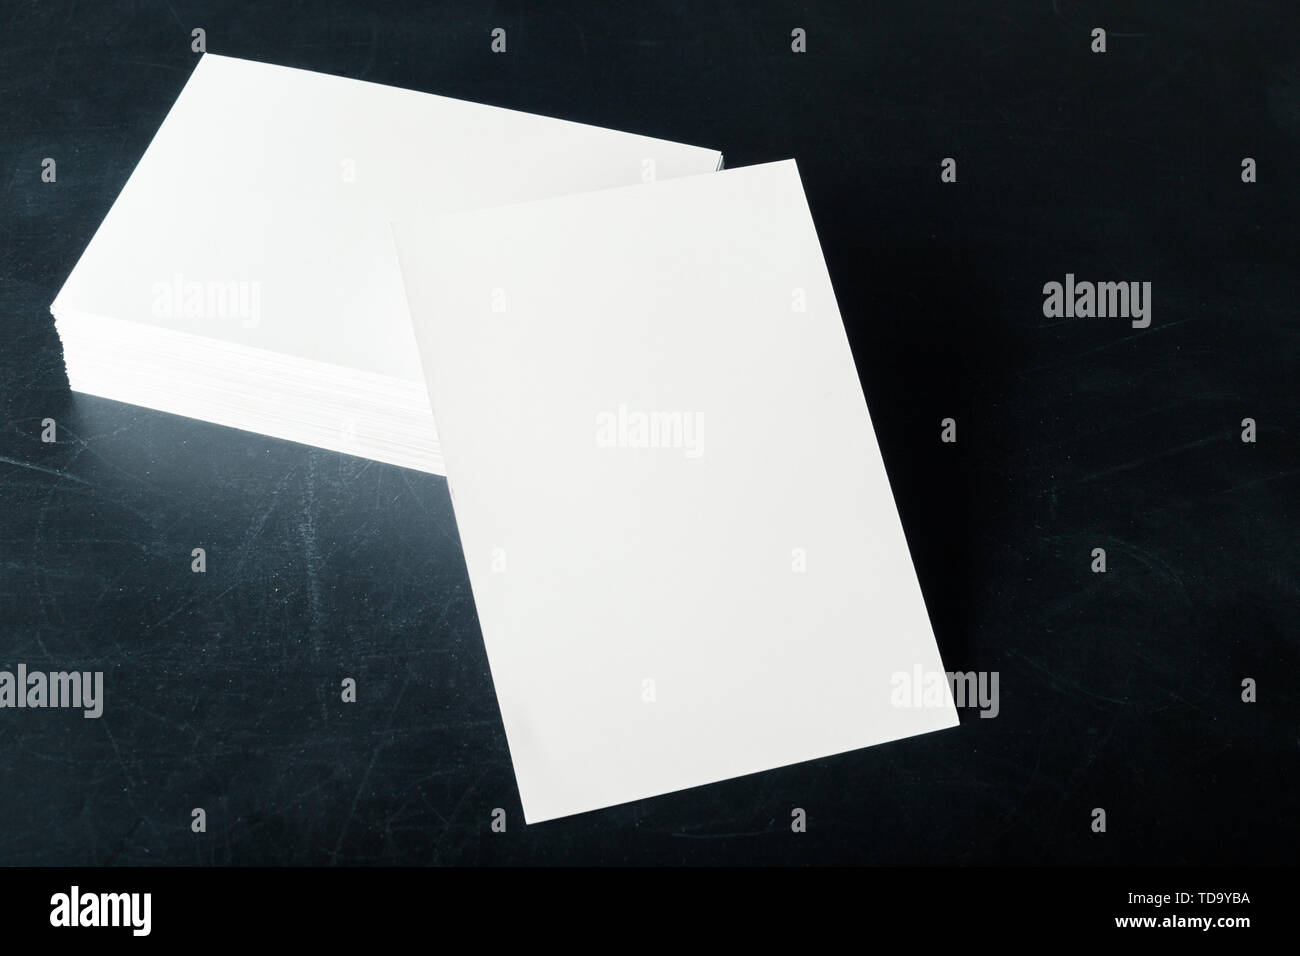 backed paper blank business cards on the stack - Stock Image